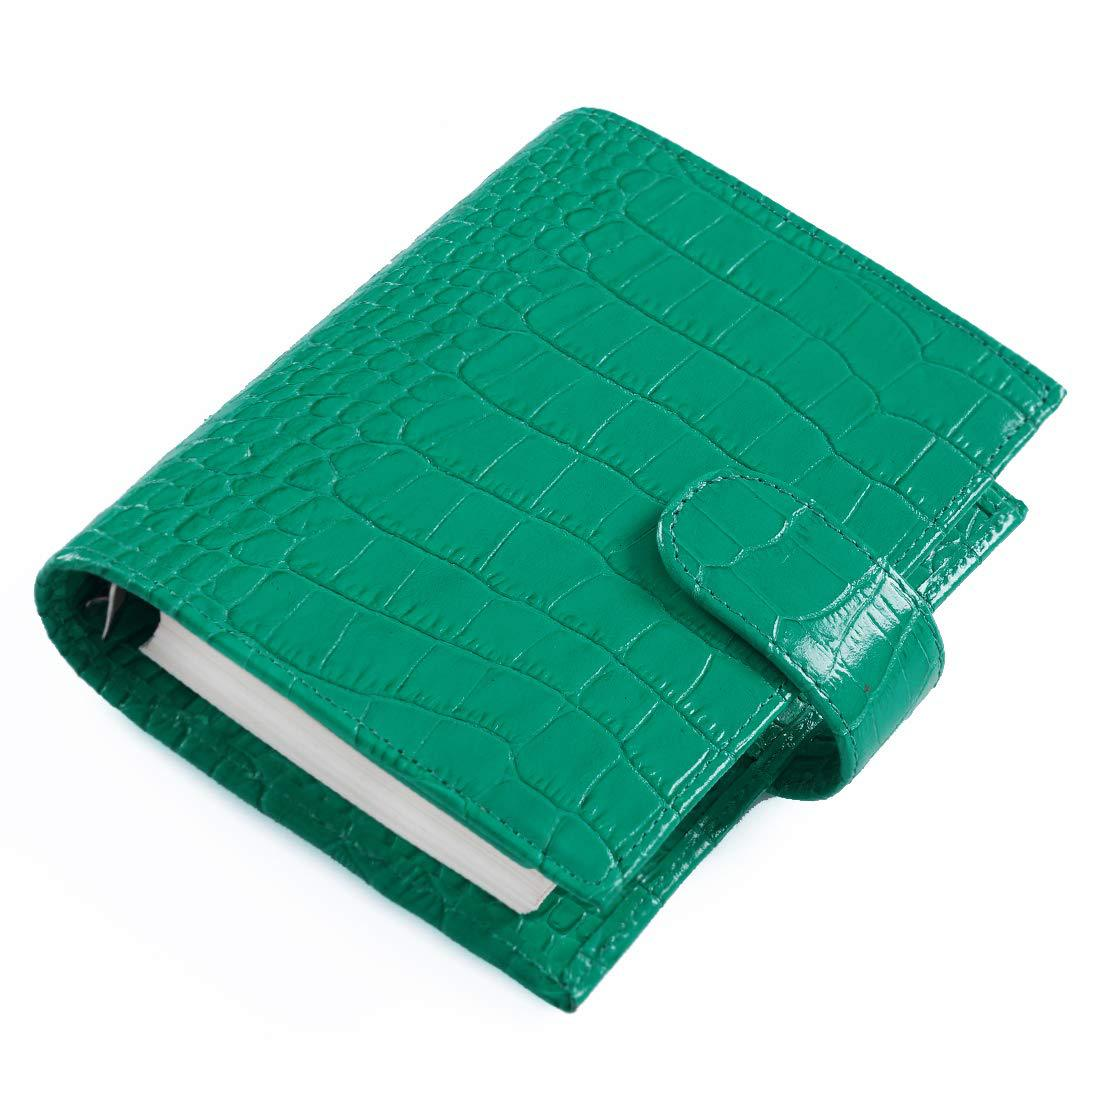 Mint Green Genuine Leather A7 Spiral Journal Lined Paper 96 Sheets